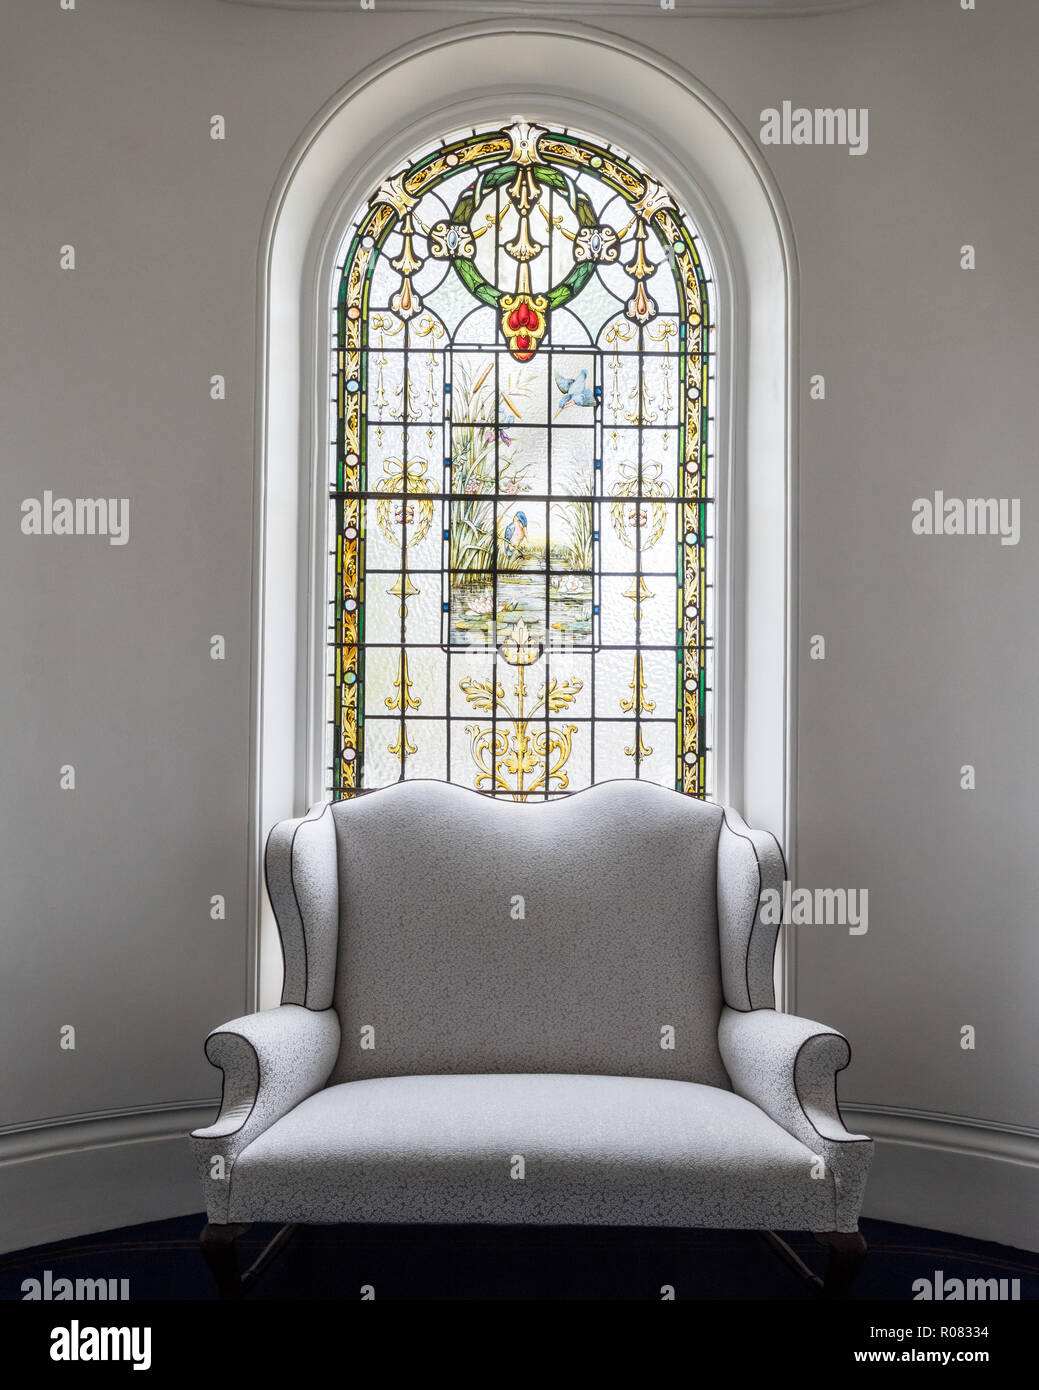 Armchair by stained glass window - Stock Image